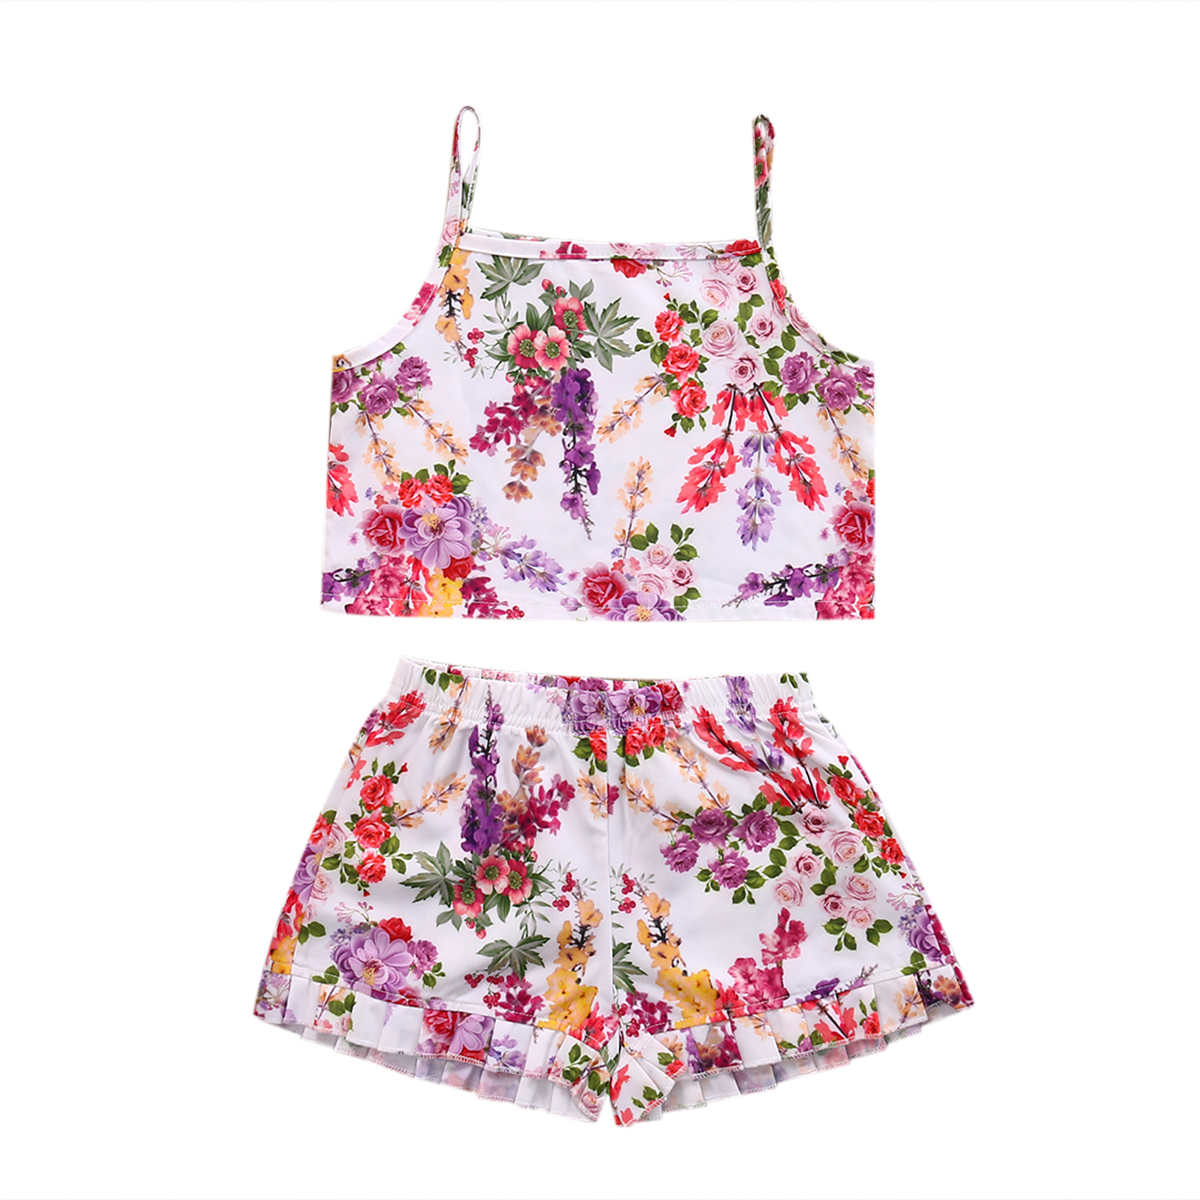 Cute Crop   Baby Girls Floral Clothing Set Kids Babies Girl Clothes Tank Vest Top+Shorts Bottom 2PCS Outfits  Sets